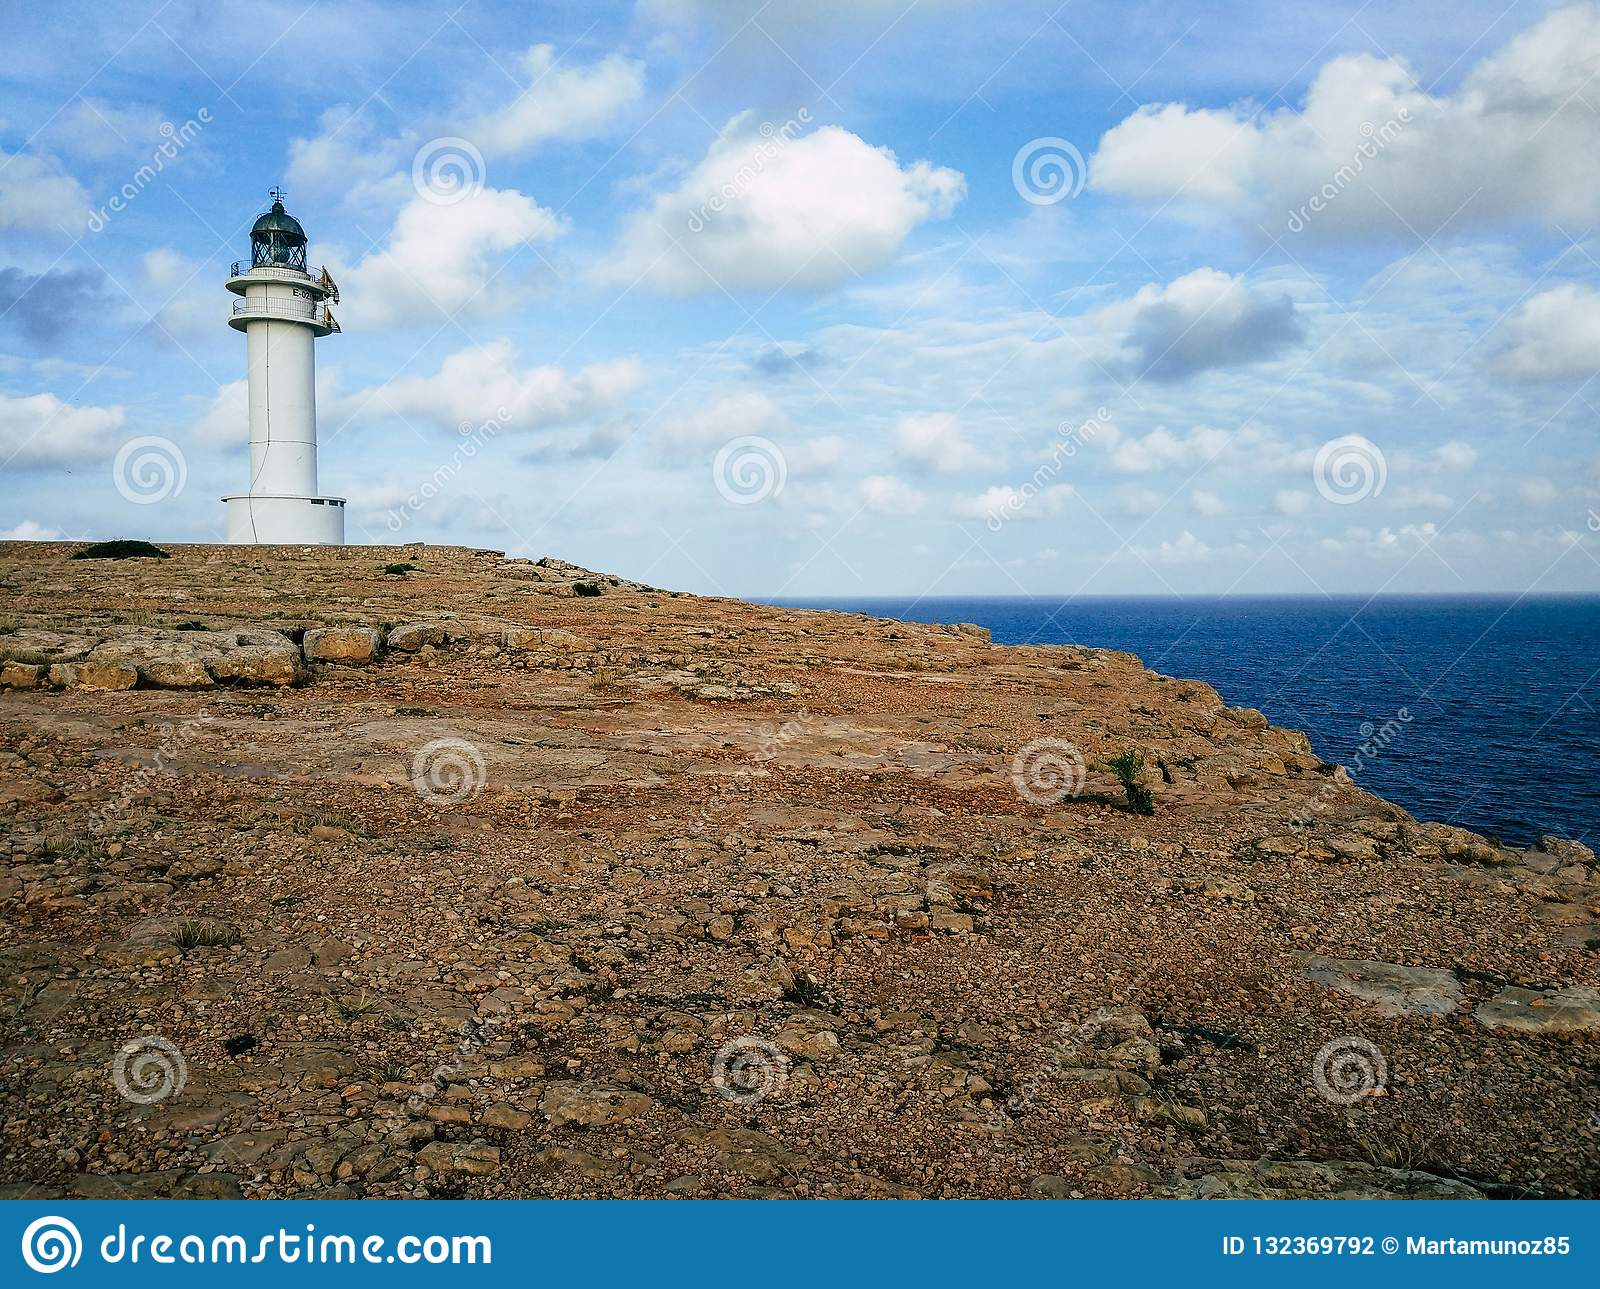 Barbaria Lighthouse at the top of a cliff